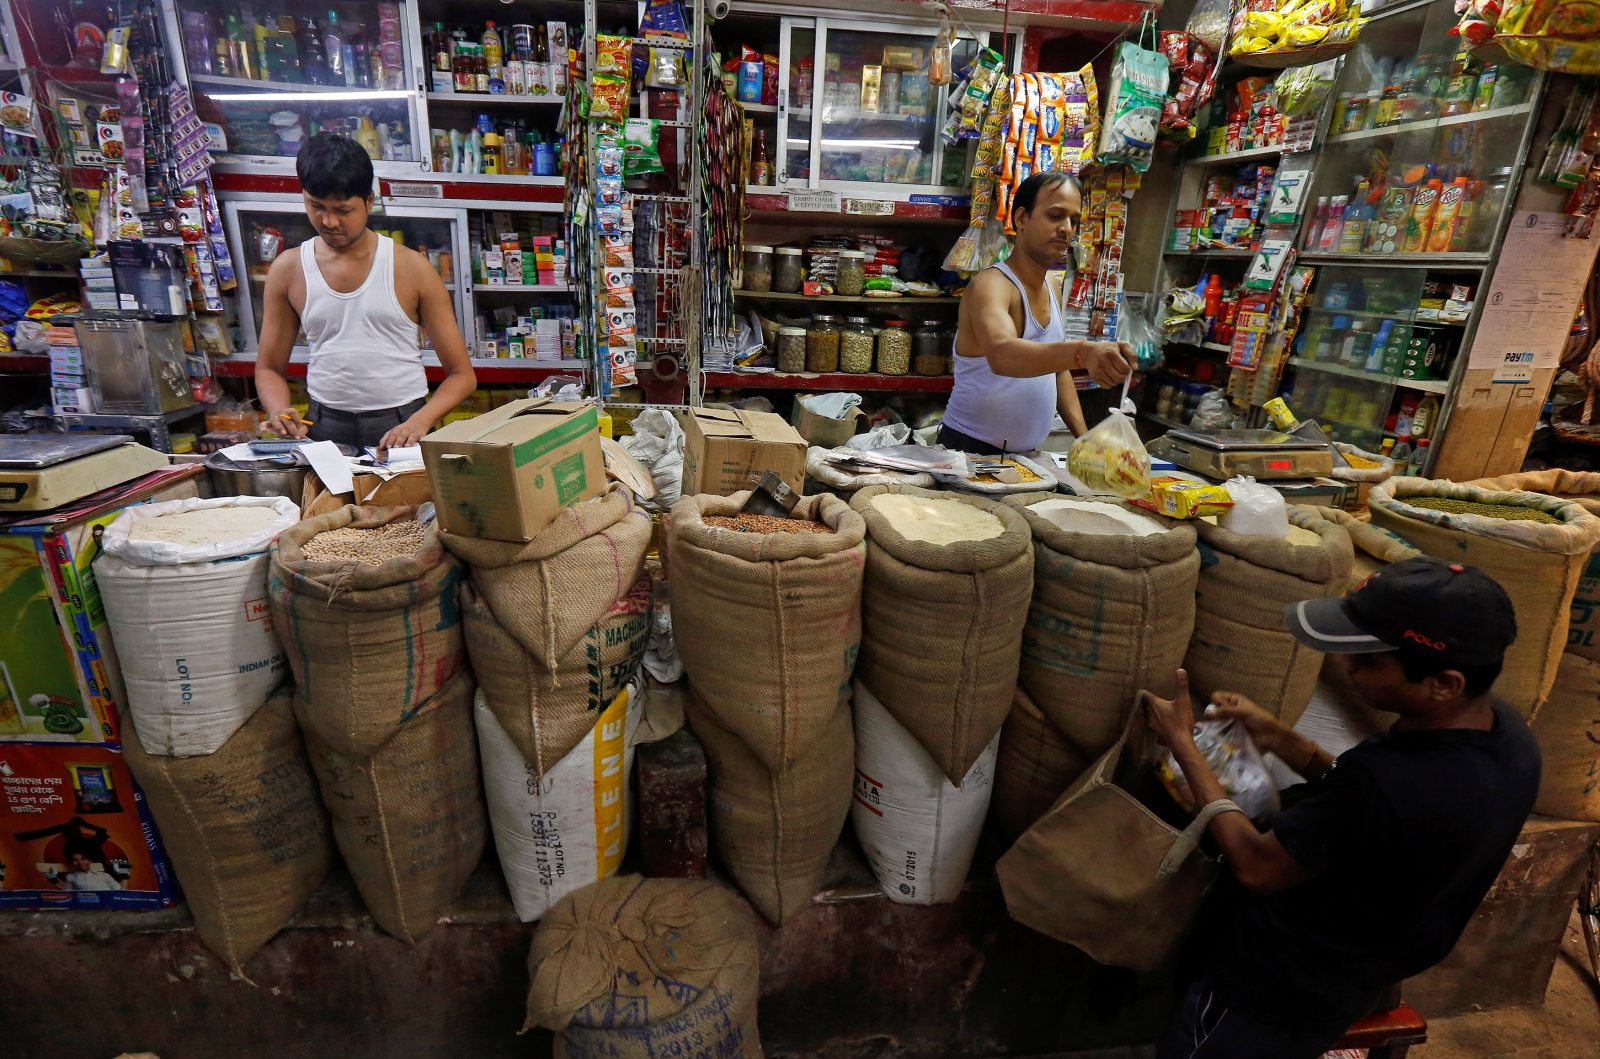 A shopkeeper sells groceries to a customer at his shop in Kolkata, India, September 12, 2016.